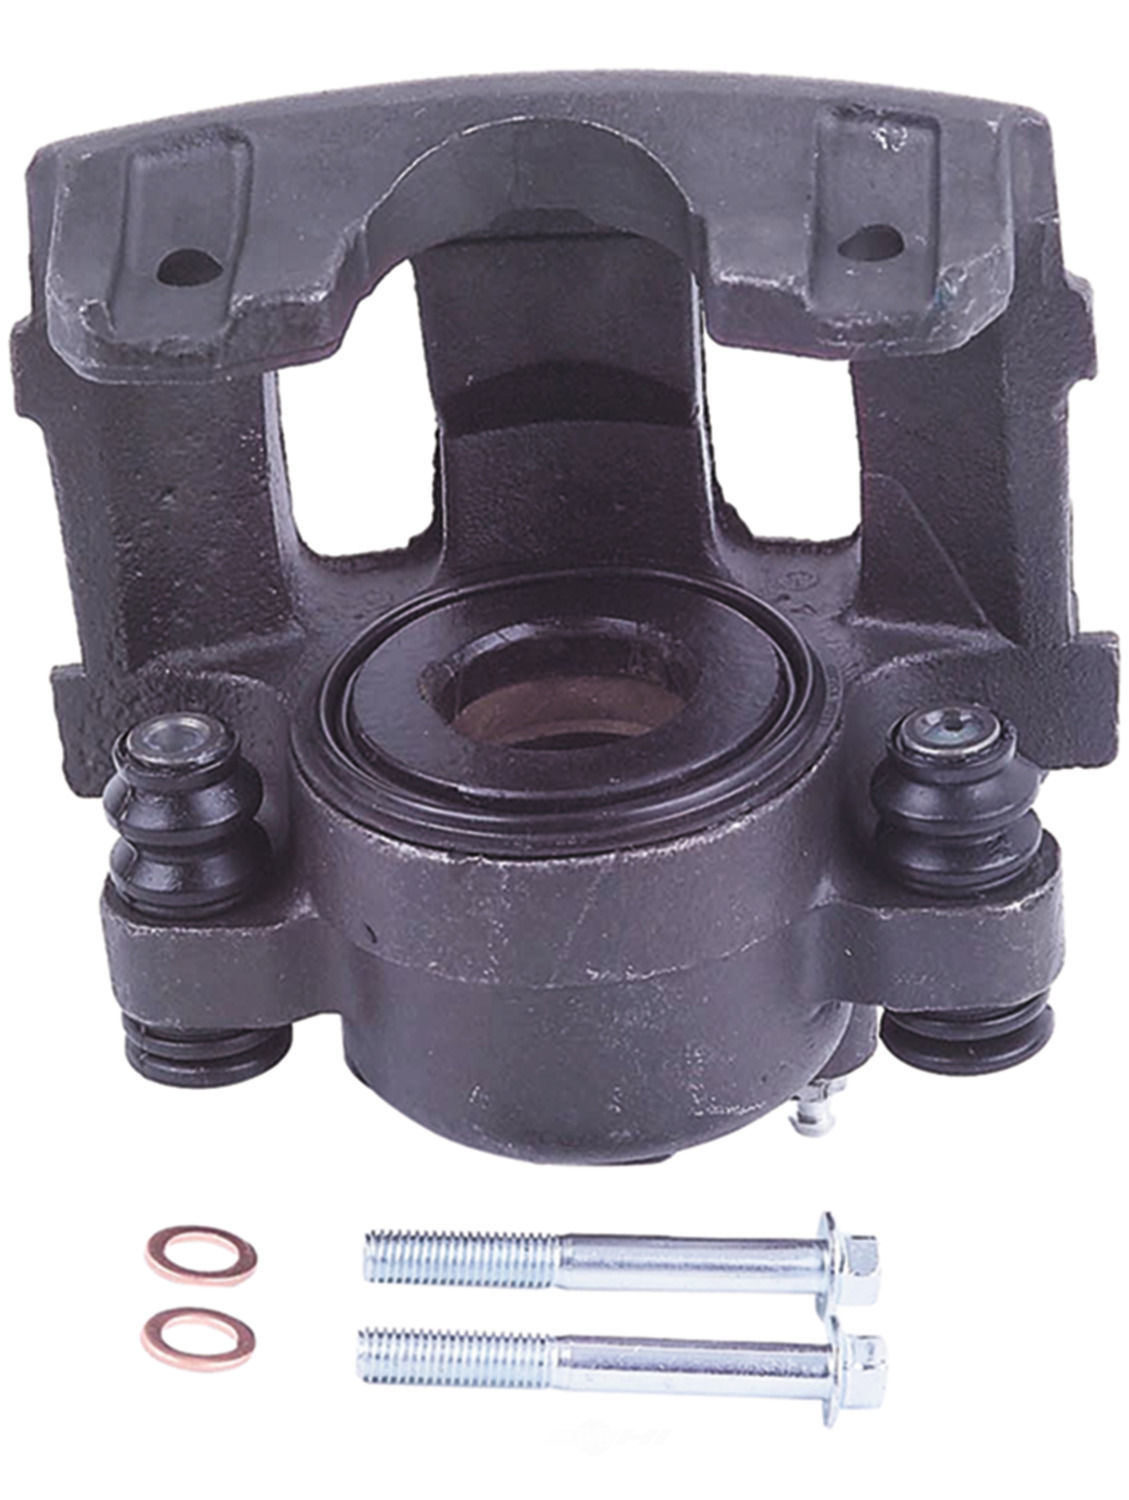 PRONTO/CARDONE - Remanufactured Friction Choice Caliper (Front Right) - PNX 18-4339